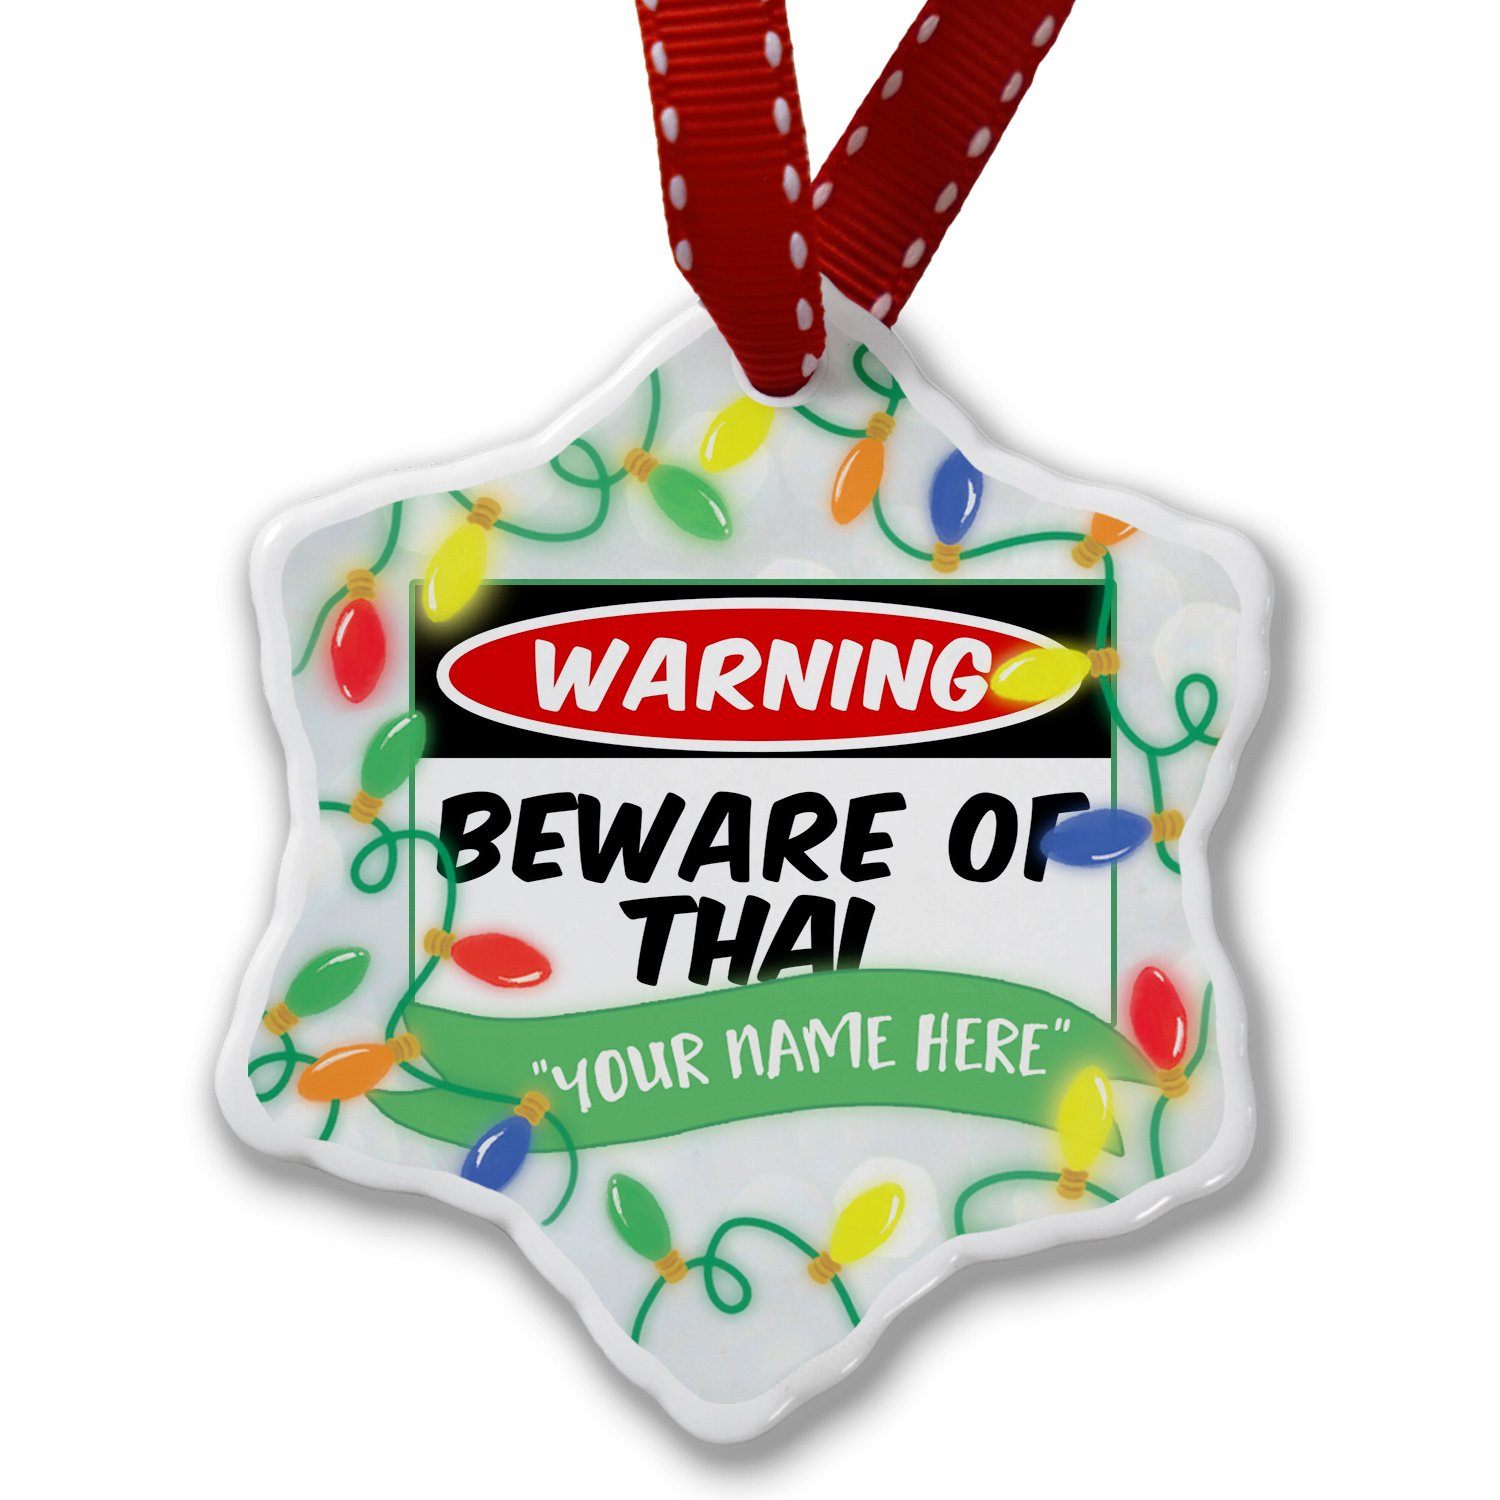 Personalized Name Christmas Ornament, Beware of the Thai Cat from Thailand NEONBLOND by NEONBLOND